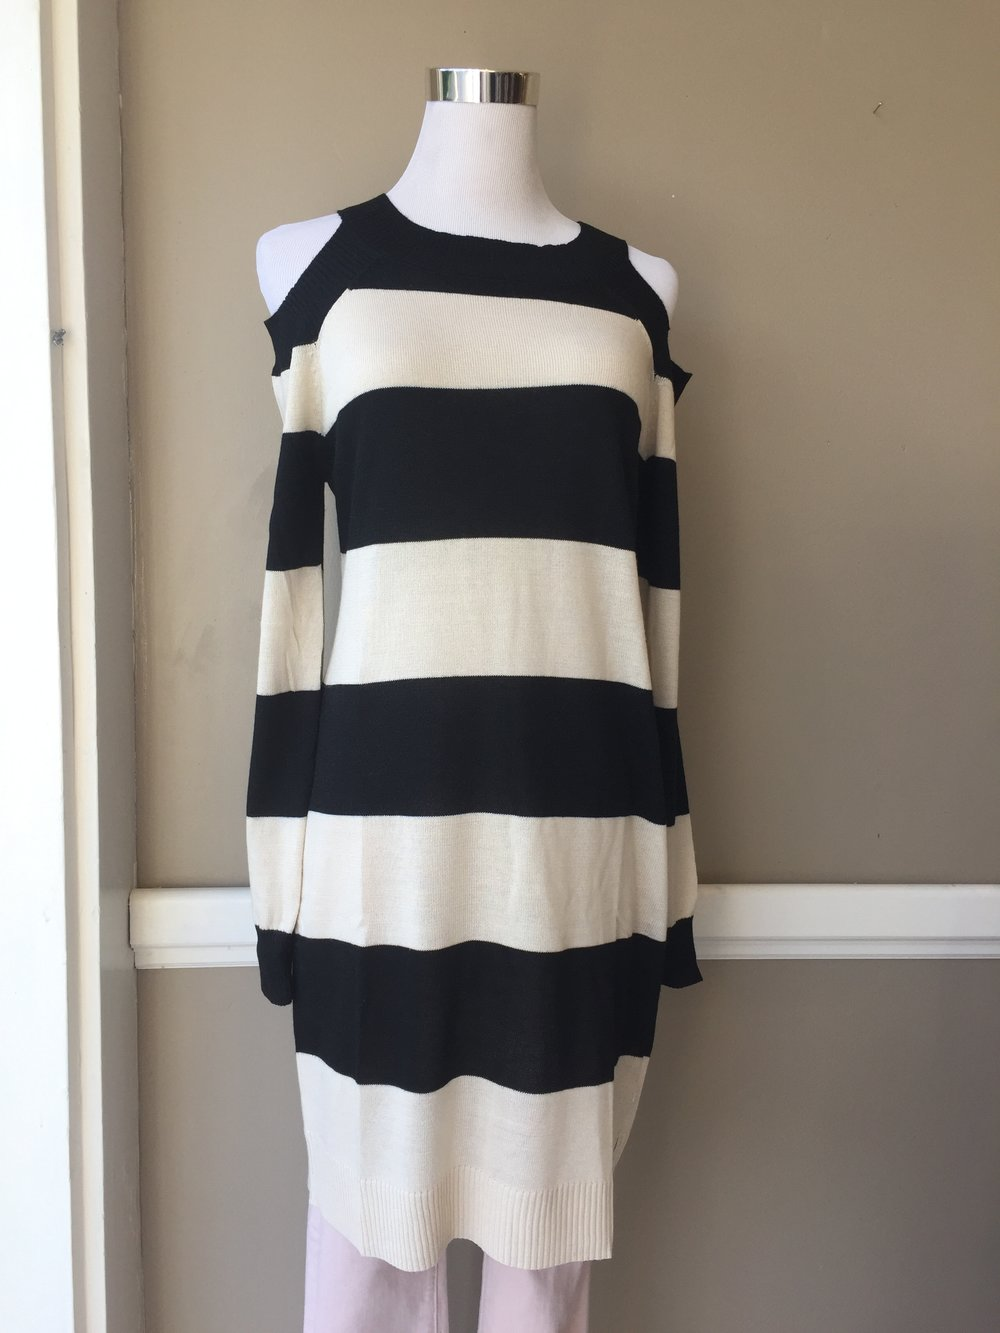 B&W Cold Shoulder Dress $40